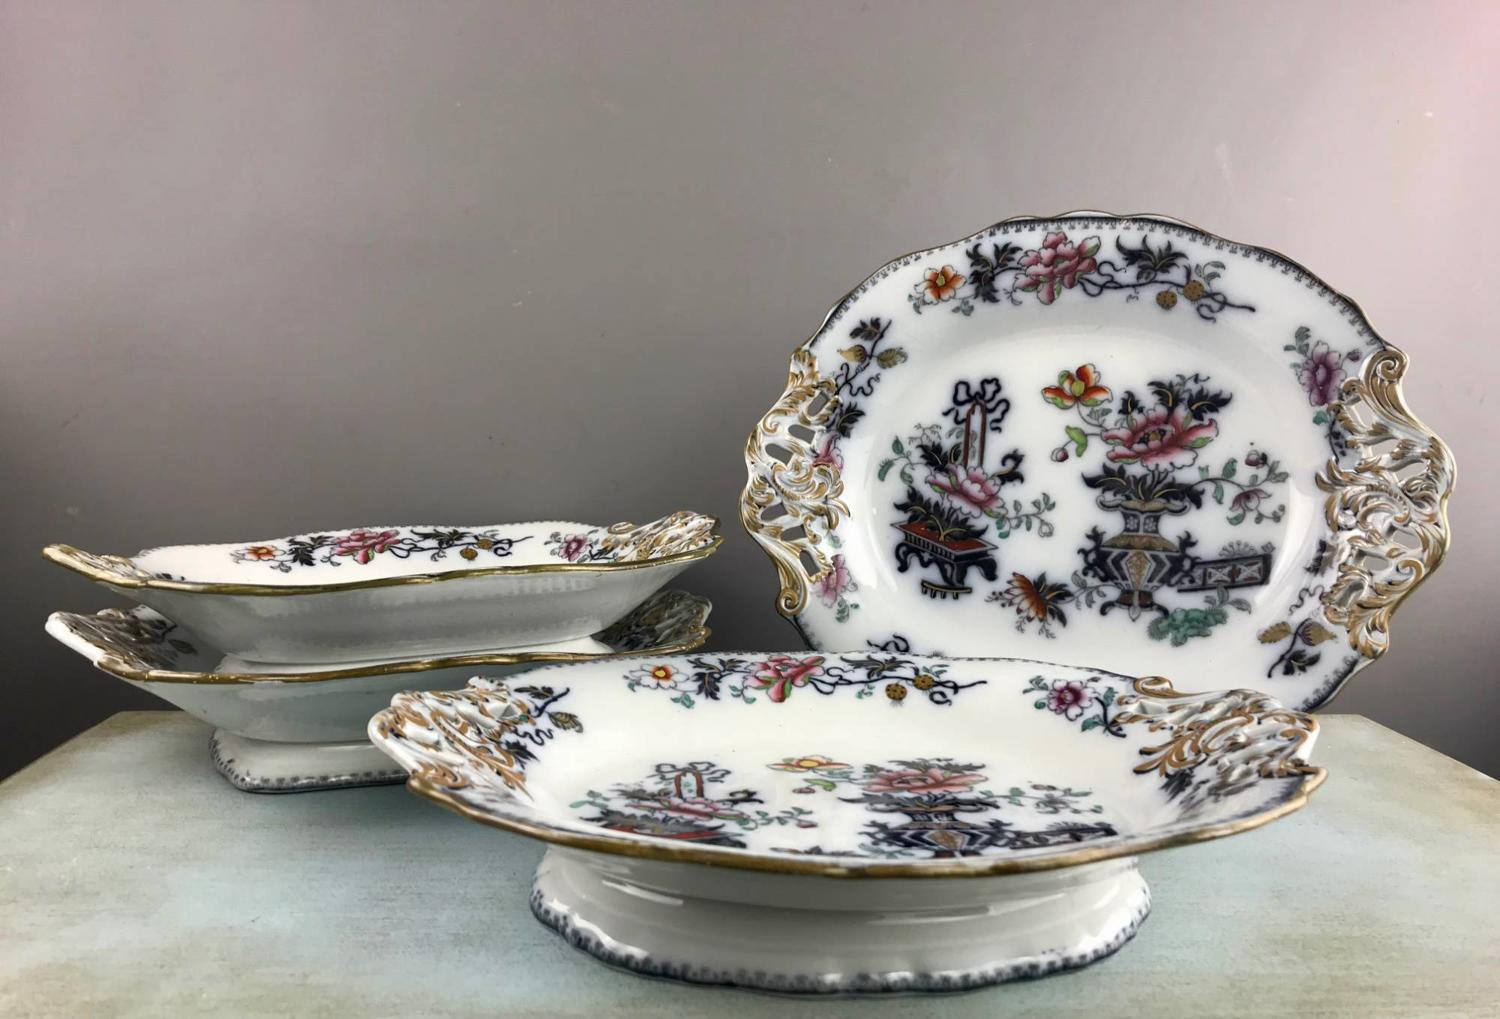 Francis Morley 'Casket Japan' Pattern Serving Dishes